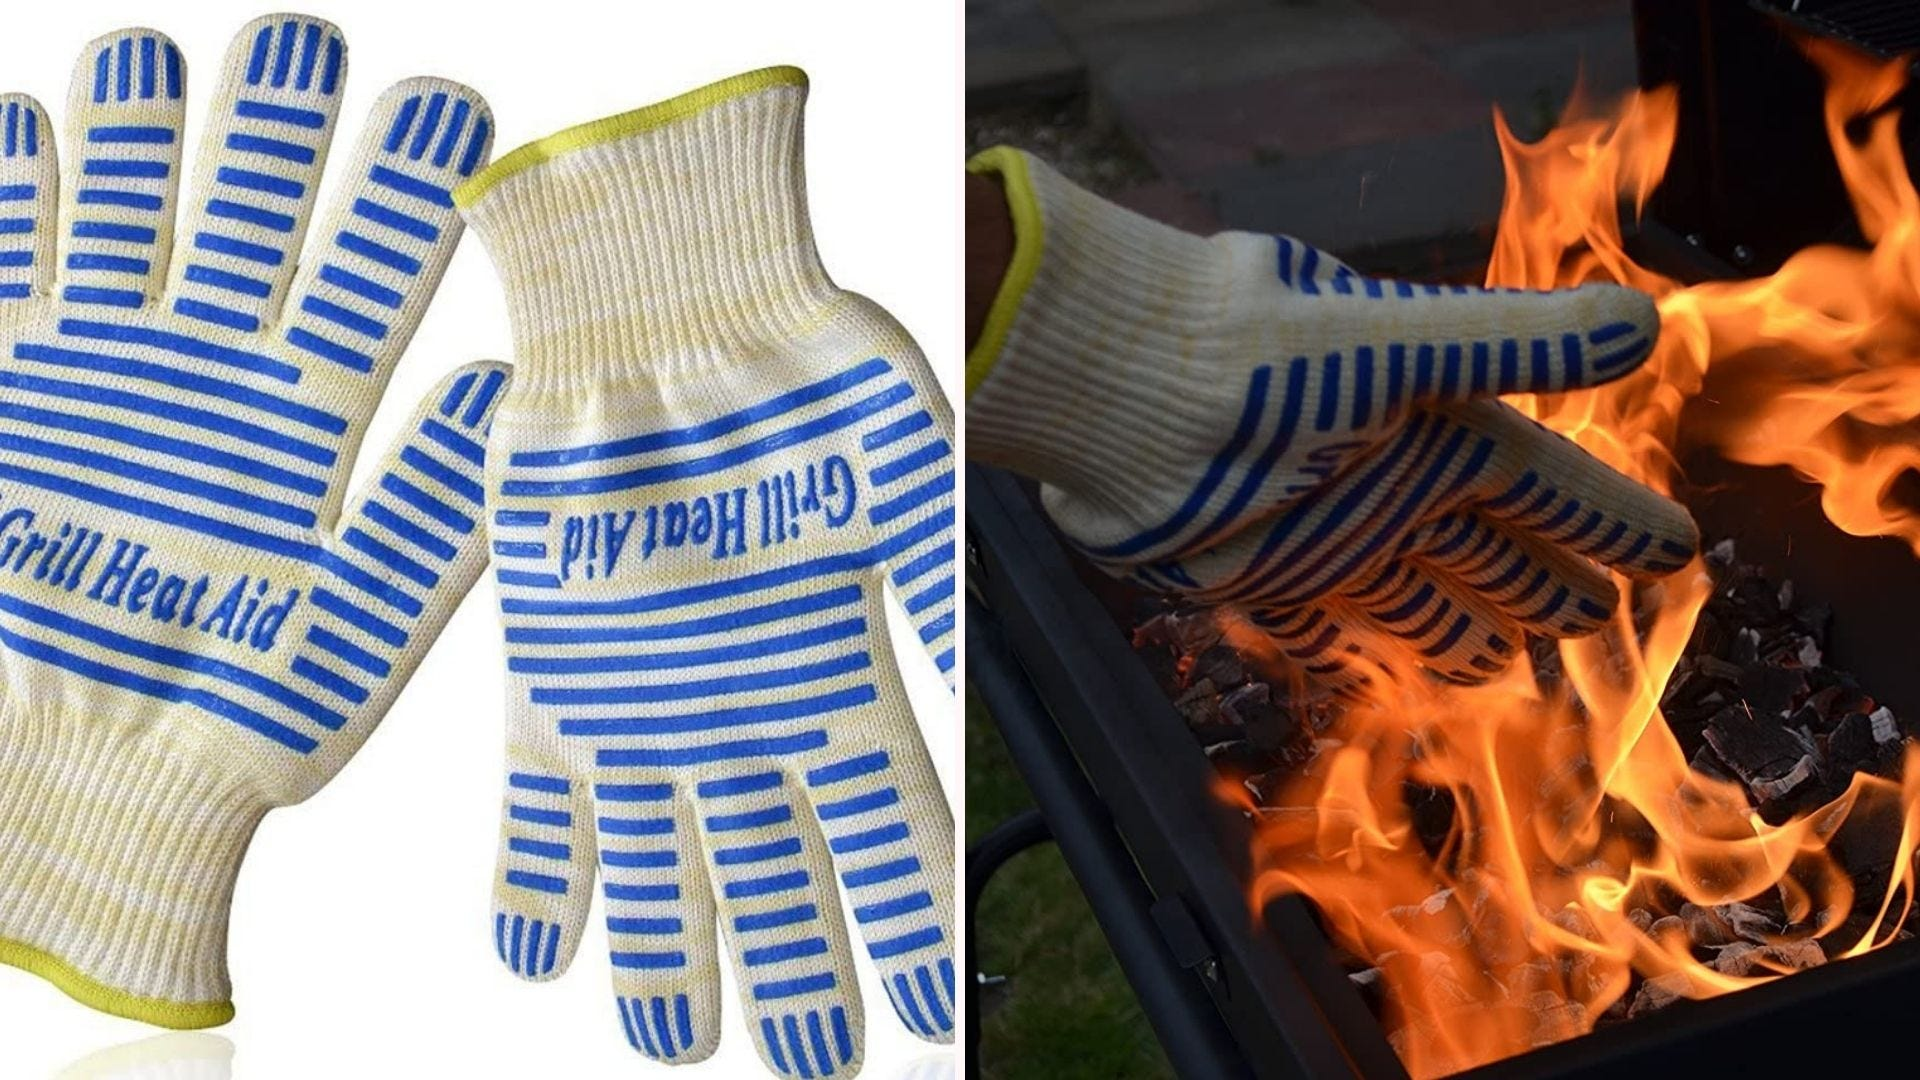 a pair of Grill Heat Aid gloves with blue lines on the back shown on a hand by a grill flame